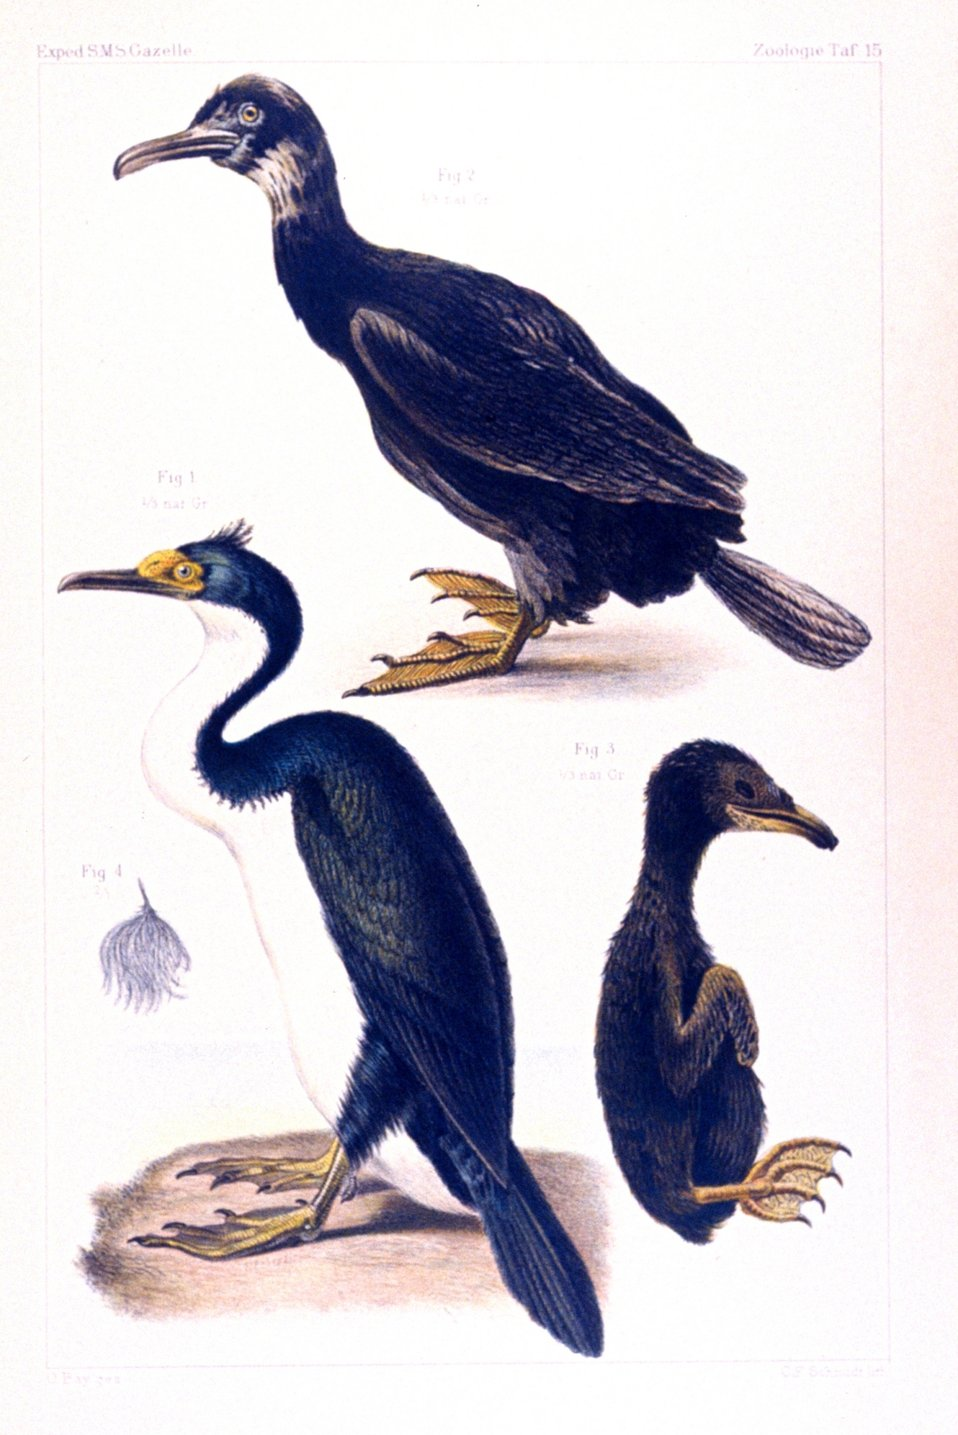 Water color of cormorants seen during the voyage of the GAZELLE, including an . chick.